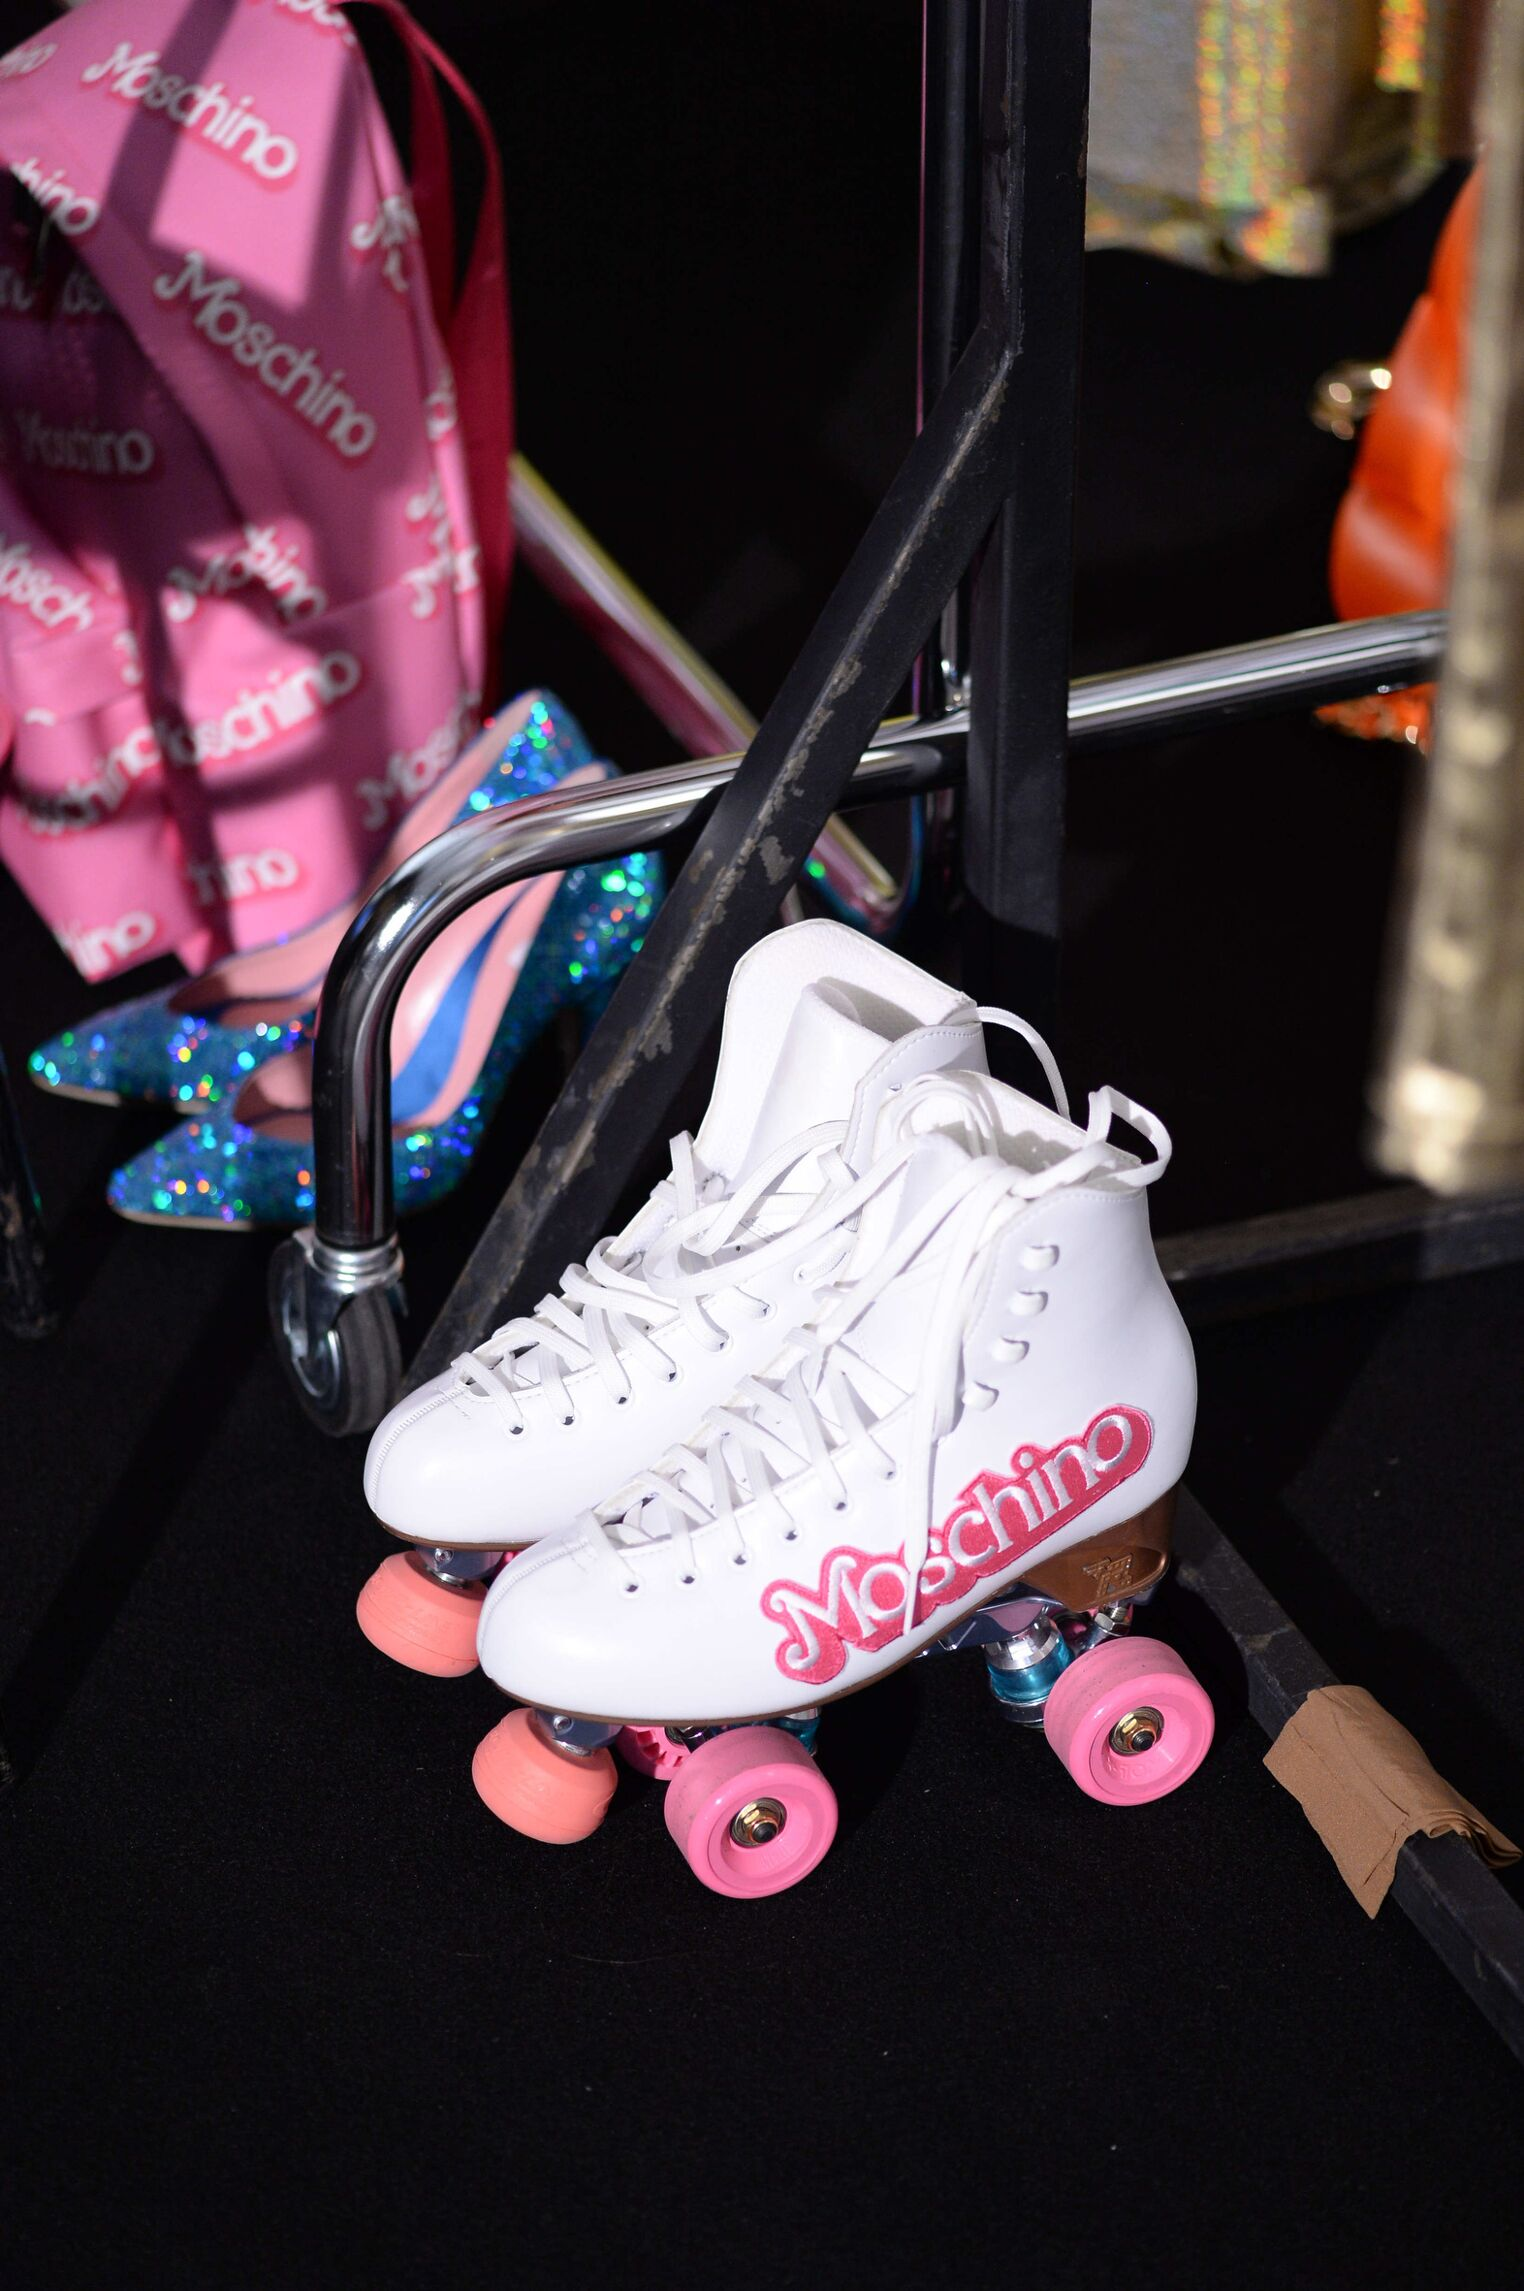 Moschino Backstage Roller Skate